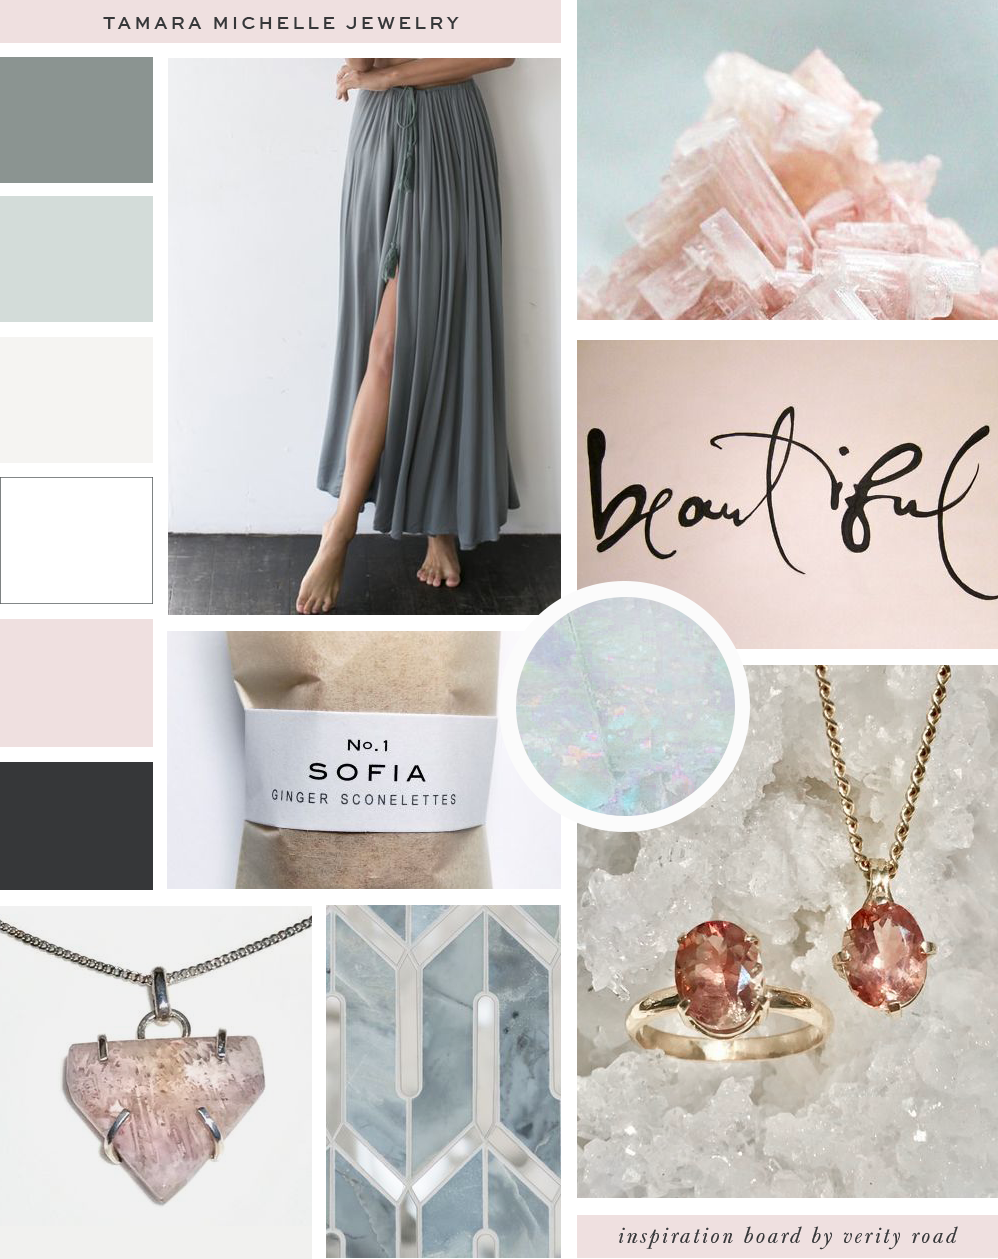 Mood board, inspiration board for the branding, brand design, brand styling of jewellery designer Tamara Michelle Jewelry by Verity Road. Feminine branding, feminine web design, luxury branding, female entrepreneur, brand photoshoot, website design, lifestyle business, weddings and events branding. See more for brand board.